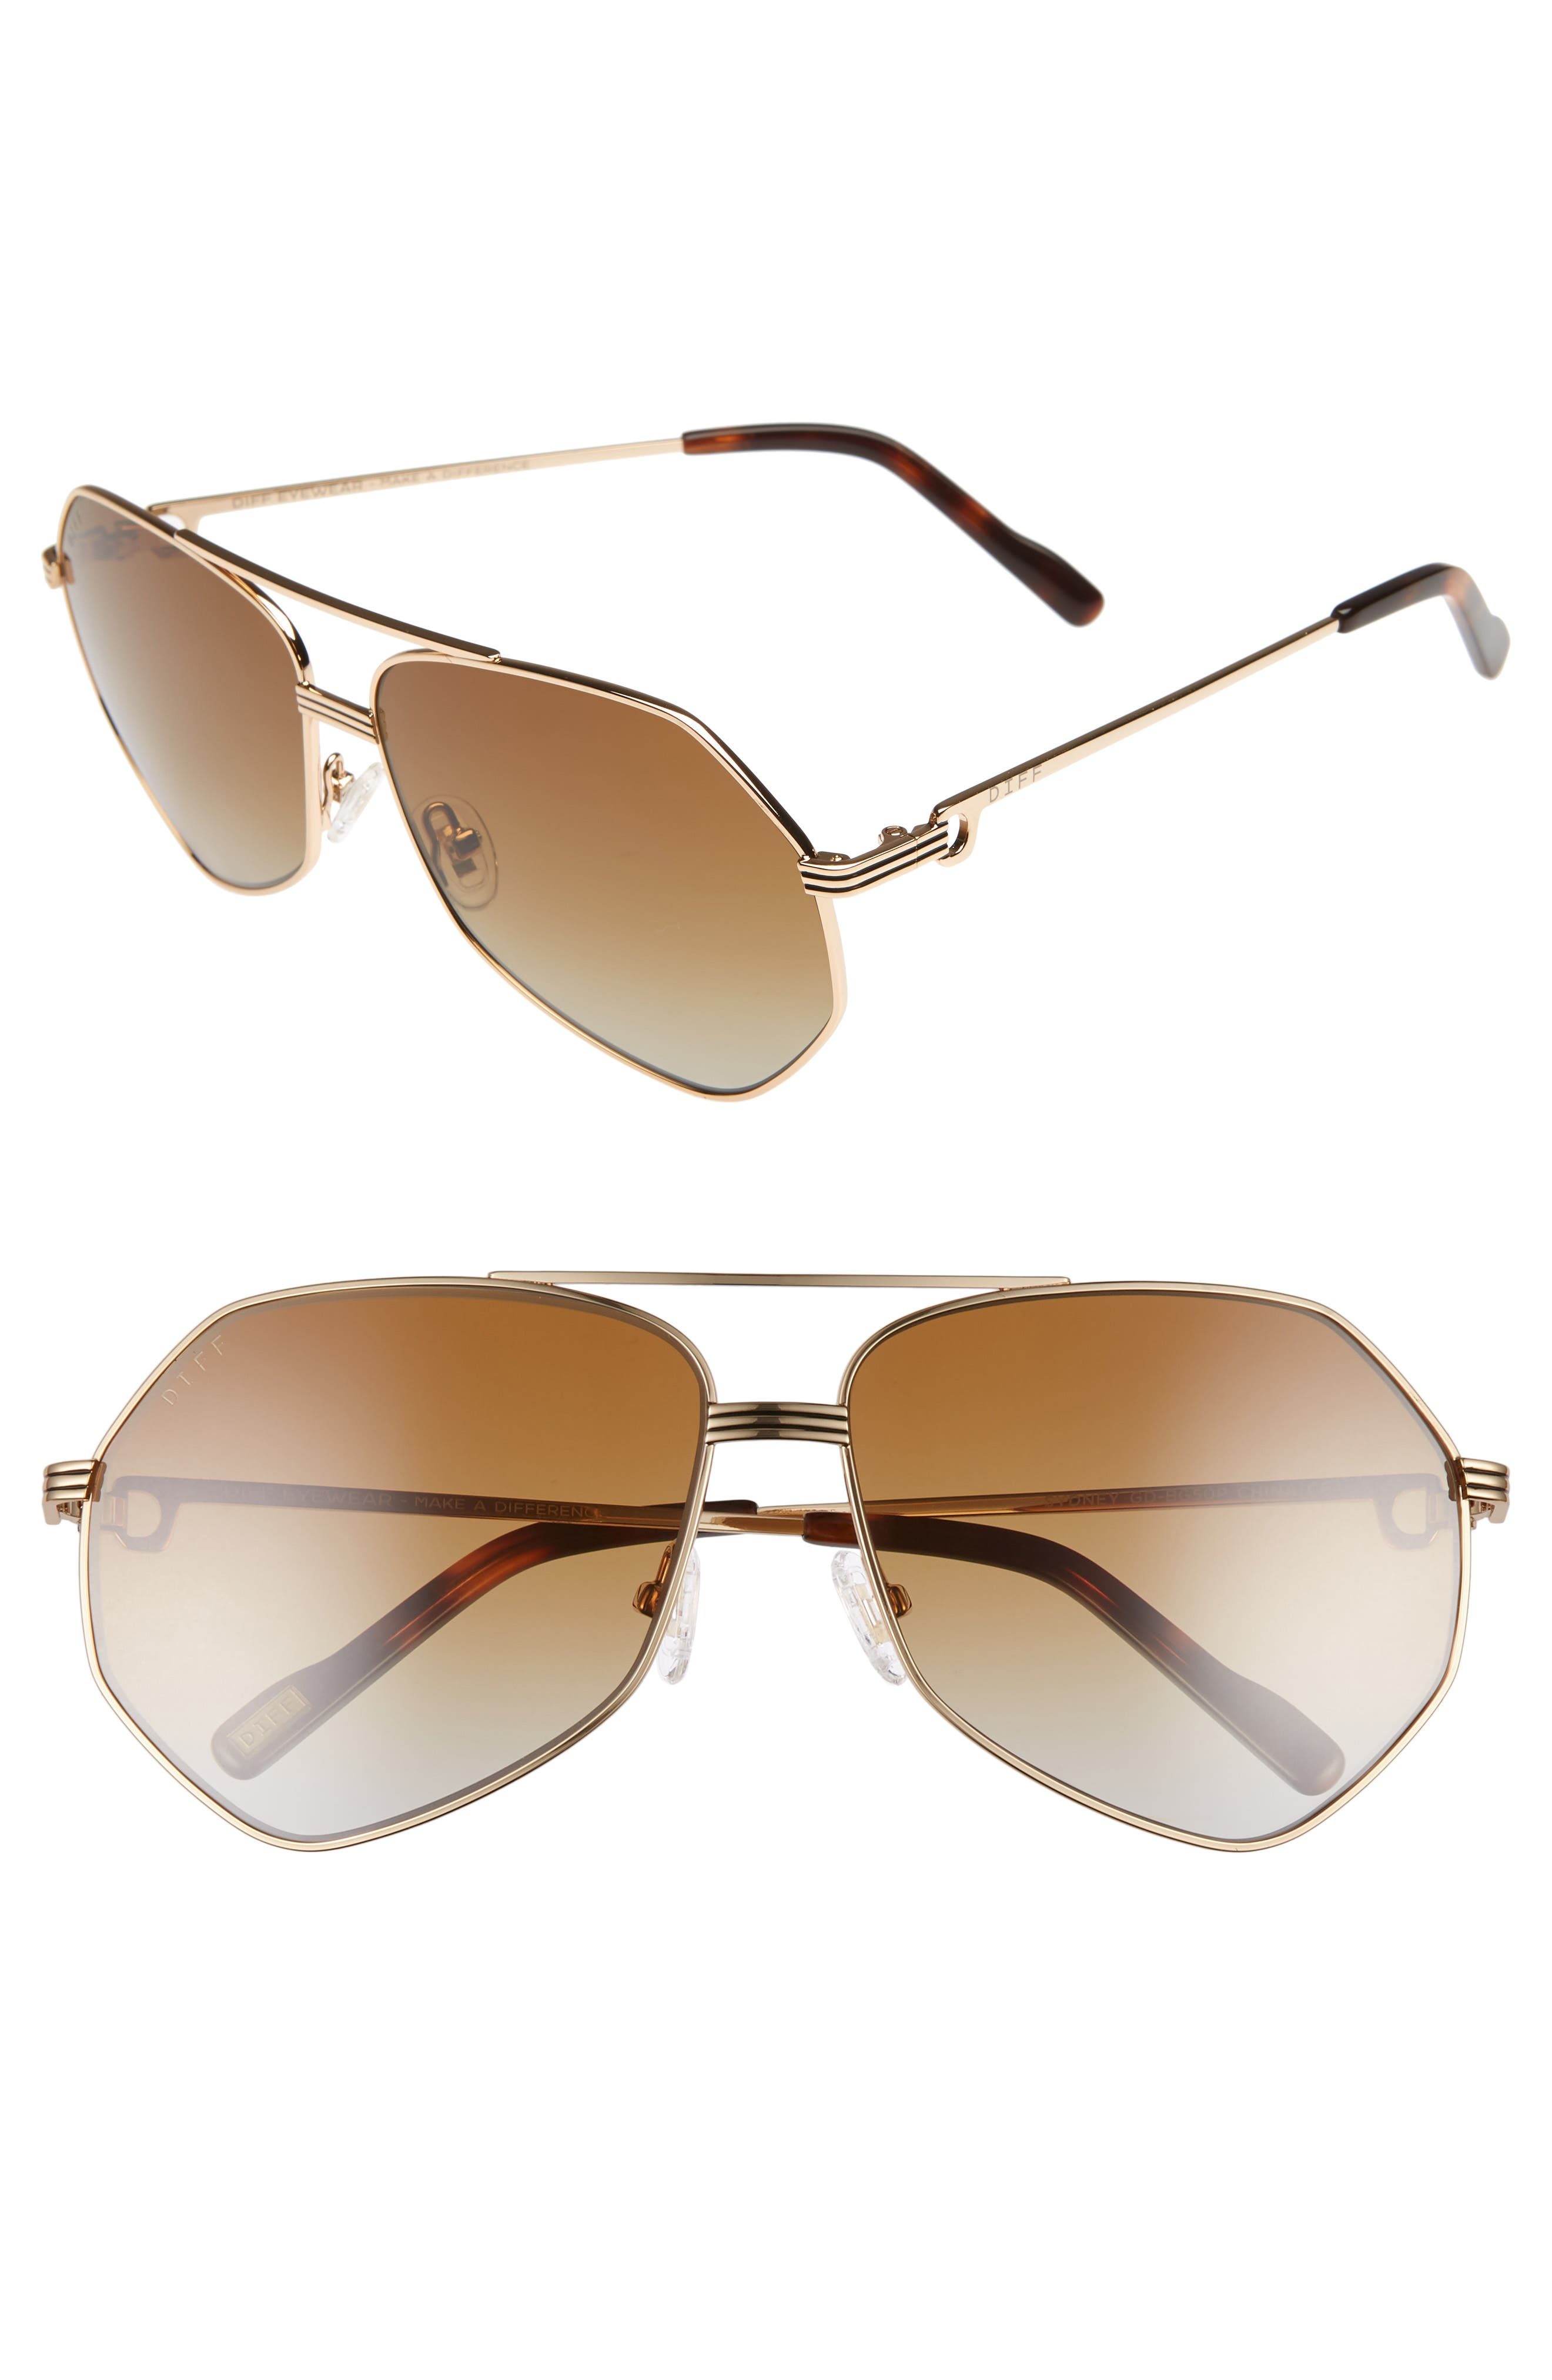 Sydney Sunglasses,                         Main,                         color, GOLD/ BROWN